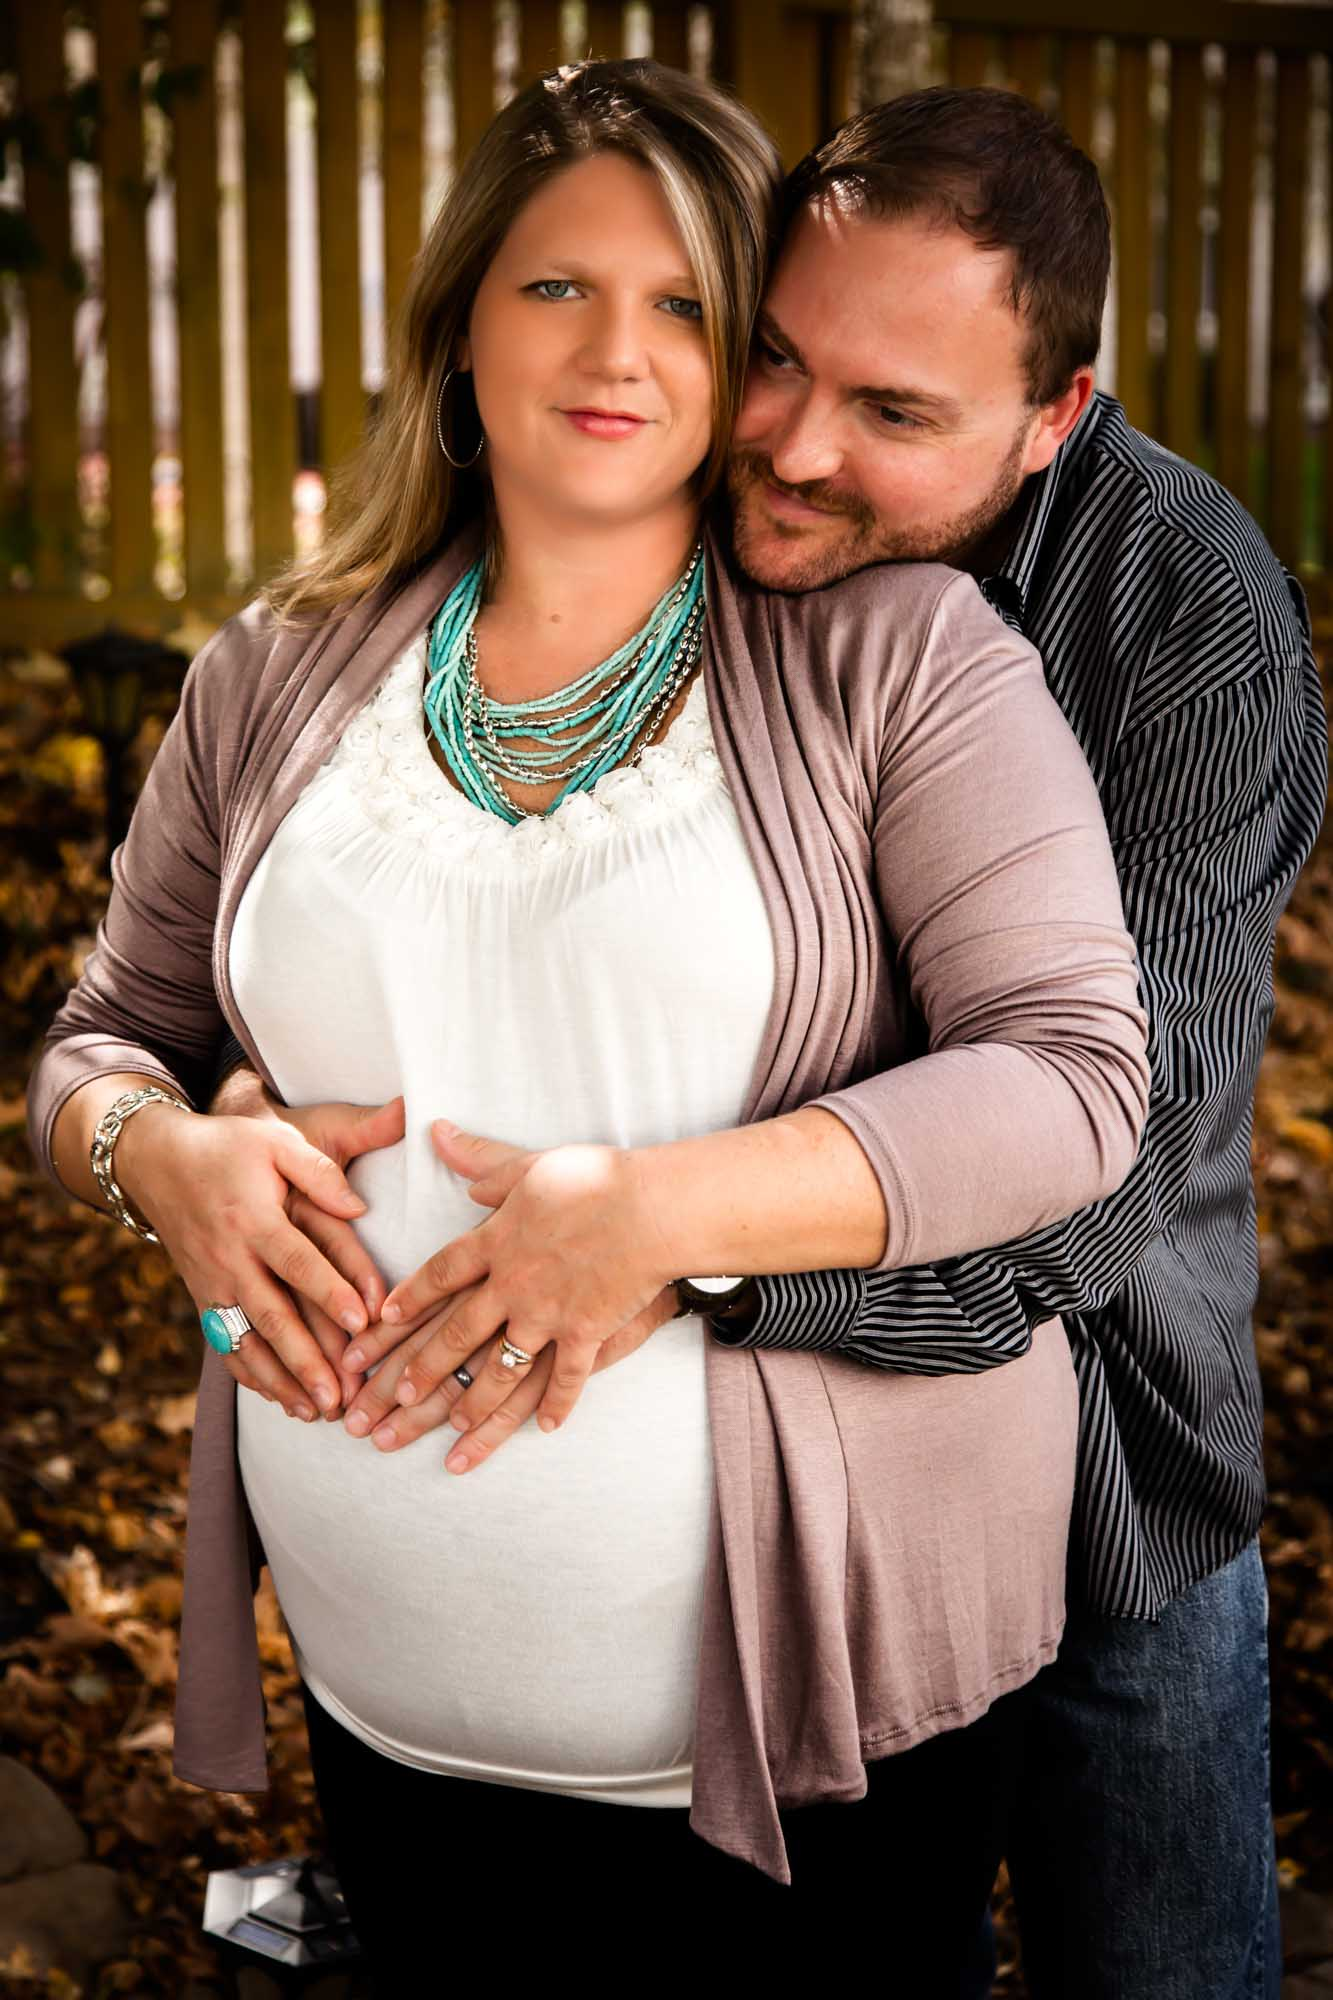 017-Courtney Pregnancy-2013-Edit-Edit-2.jpg